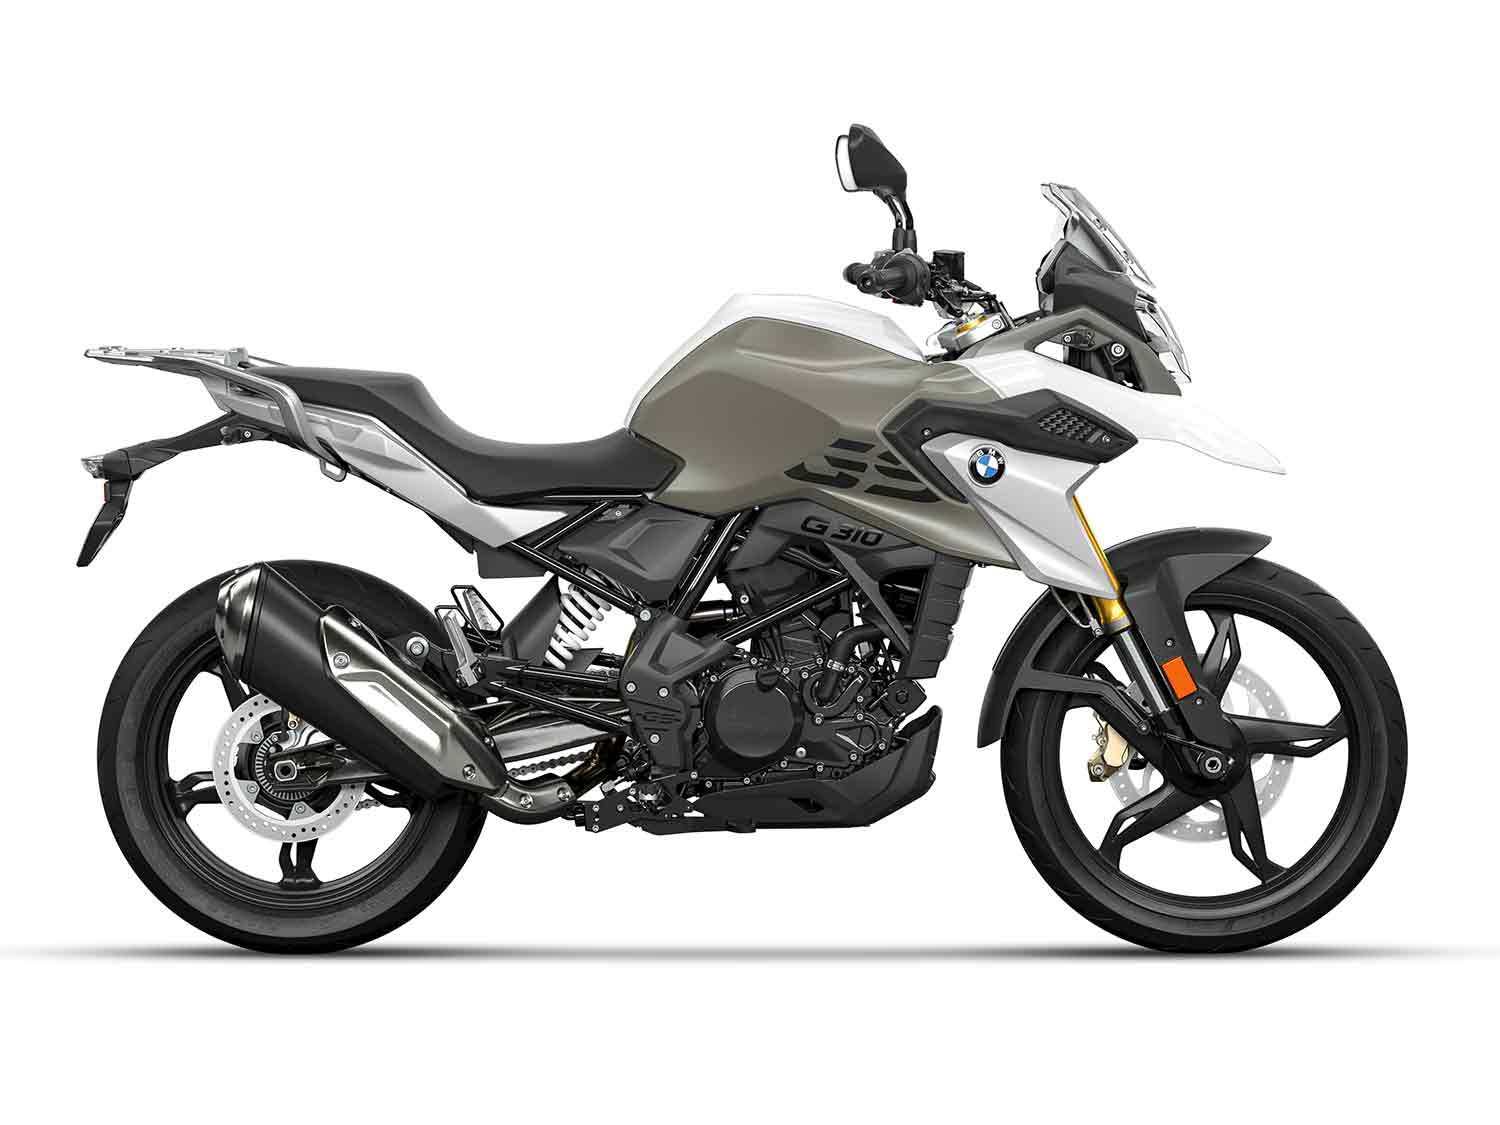 2021 BMW G 310 GS in white and gray.